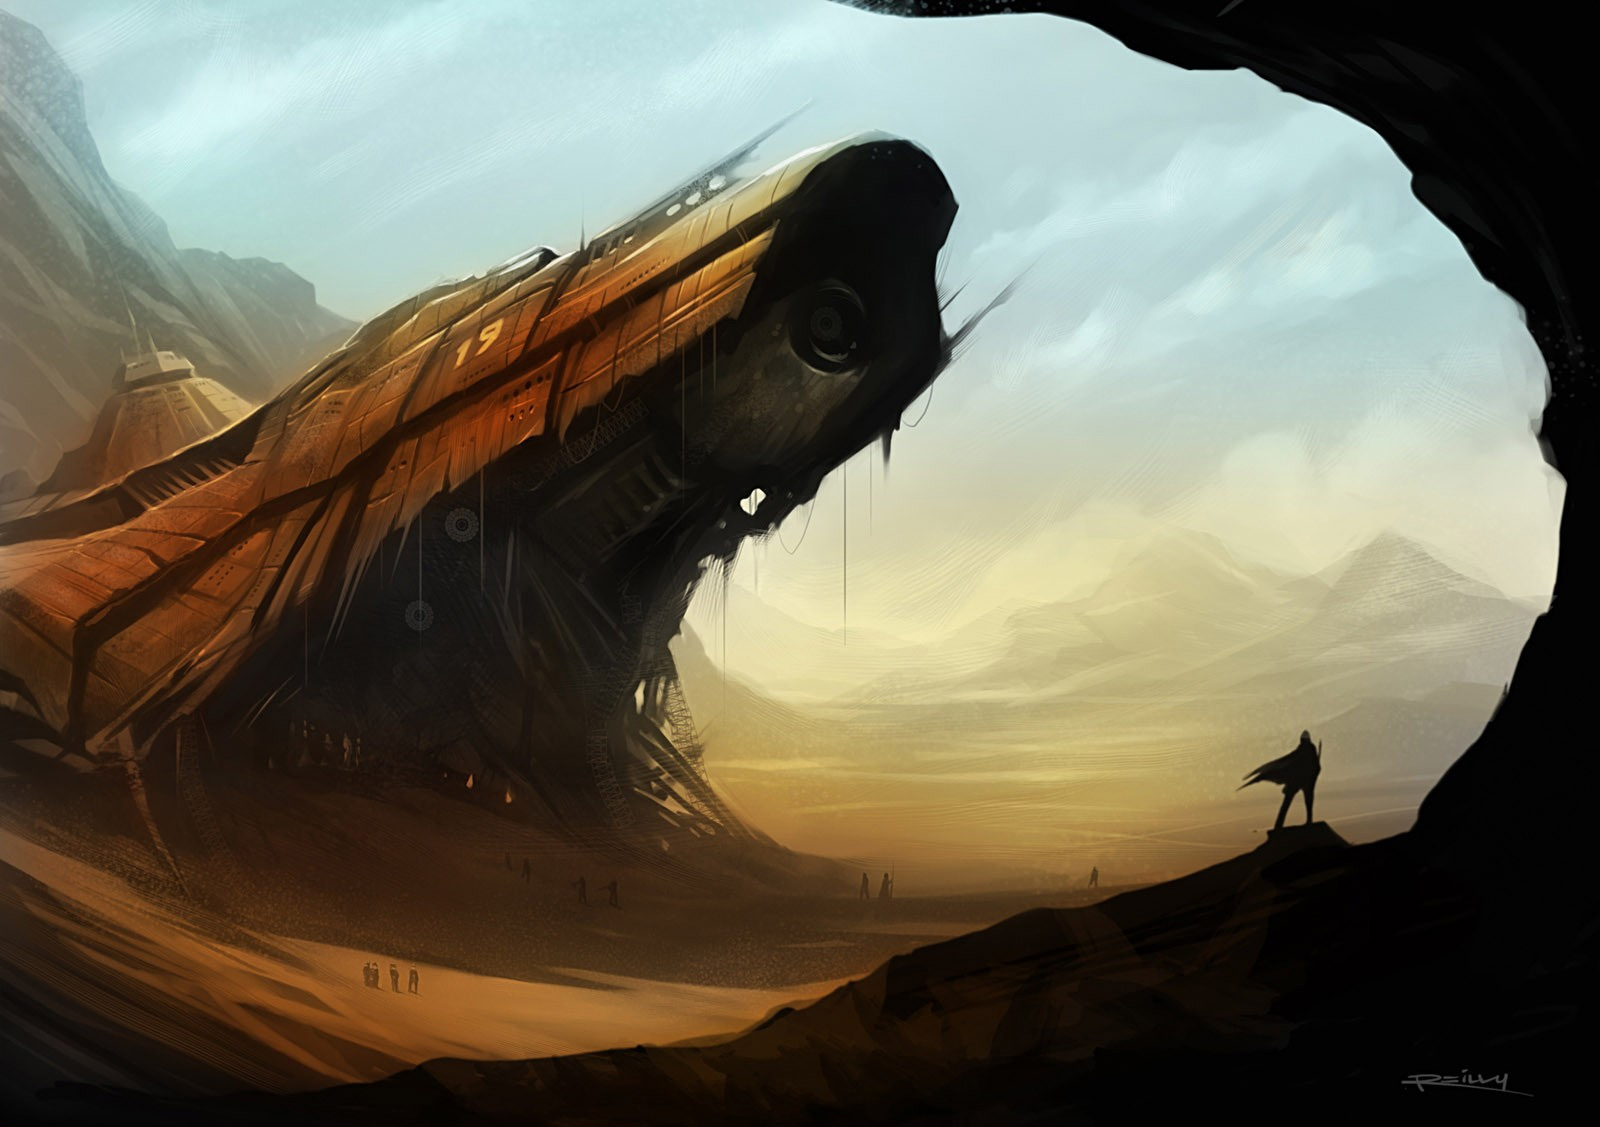 Sci-fi Art by Patrick Reilly , United States. Download full-size image ...